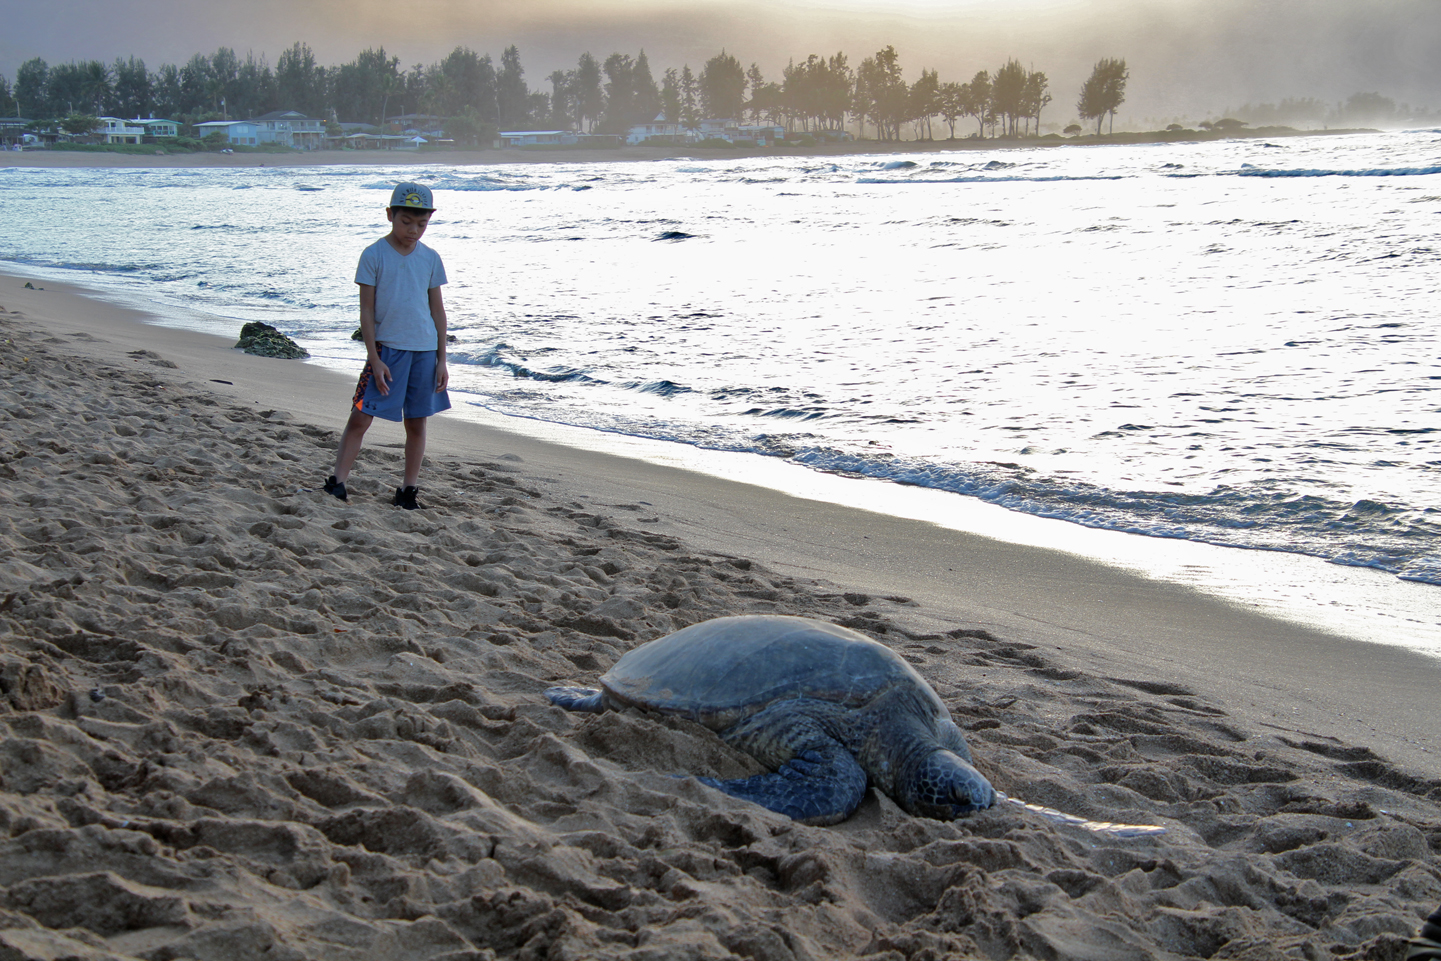 Another turtle on the beach on the North Shore.